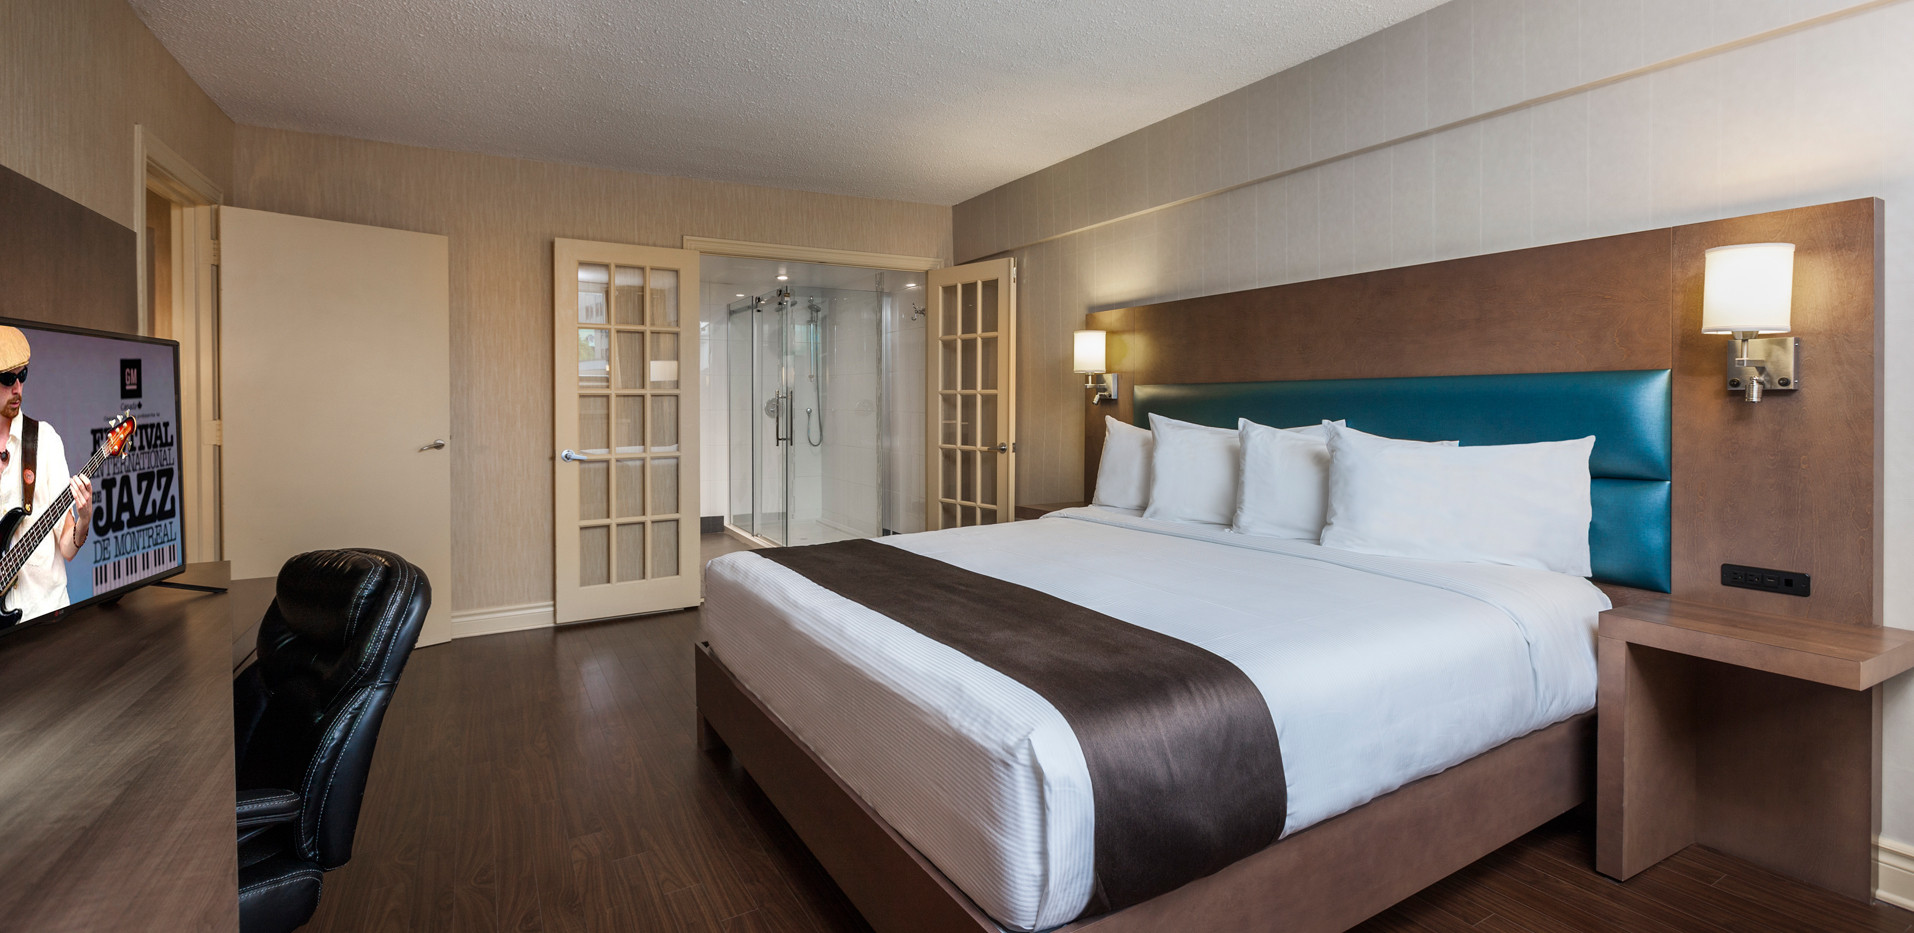 King size Executive Room